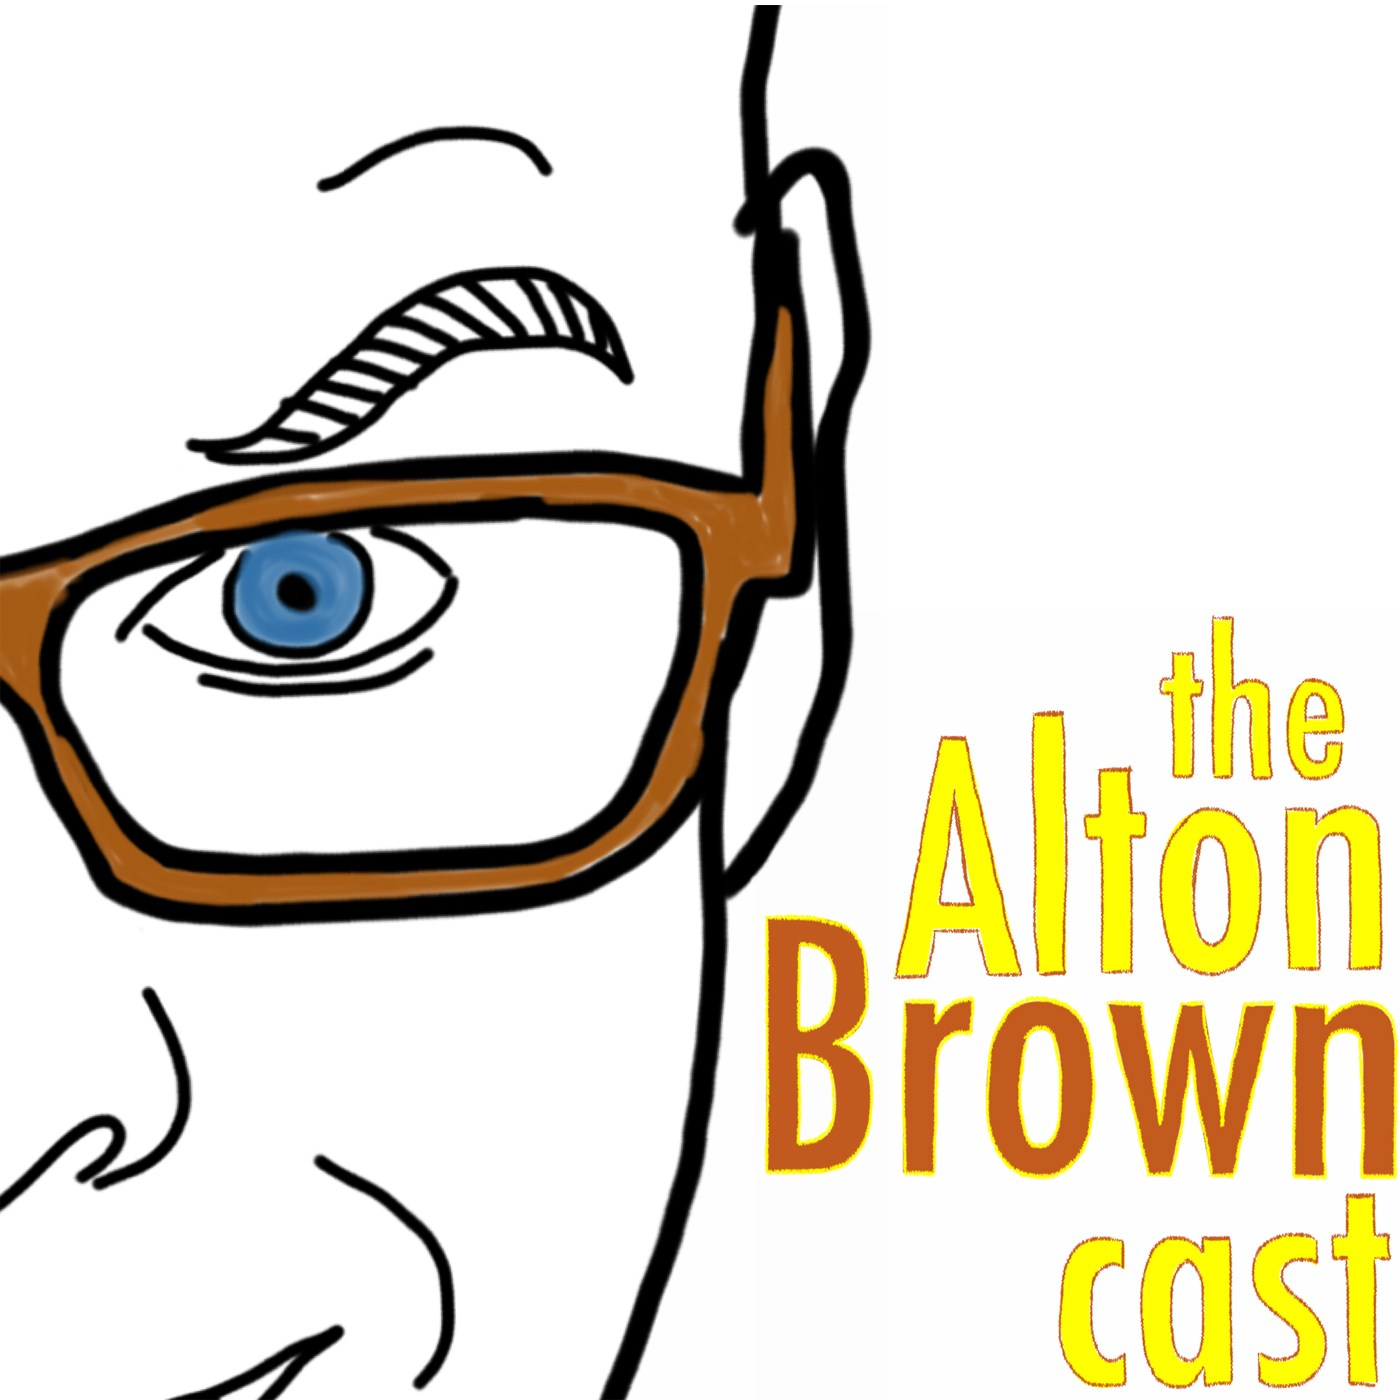 The Alton Browncast.